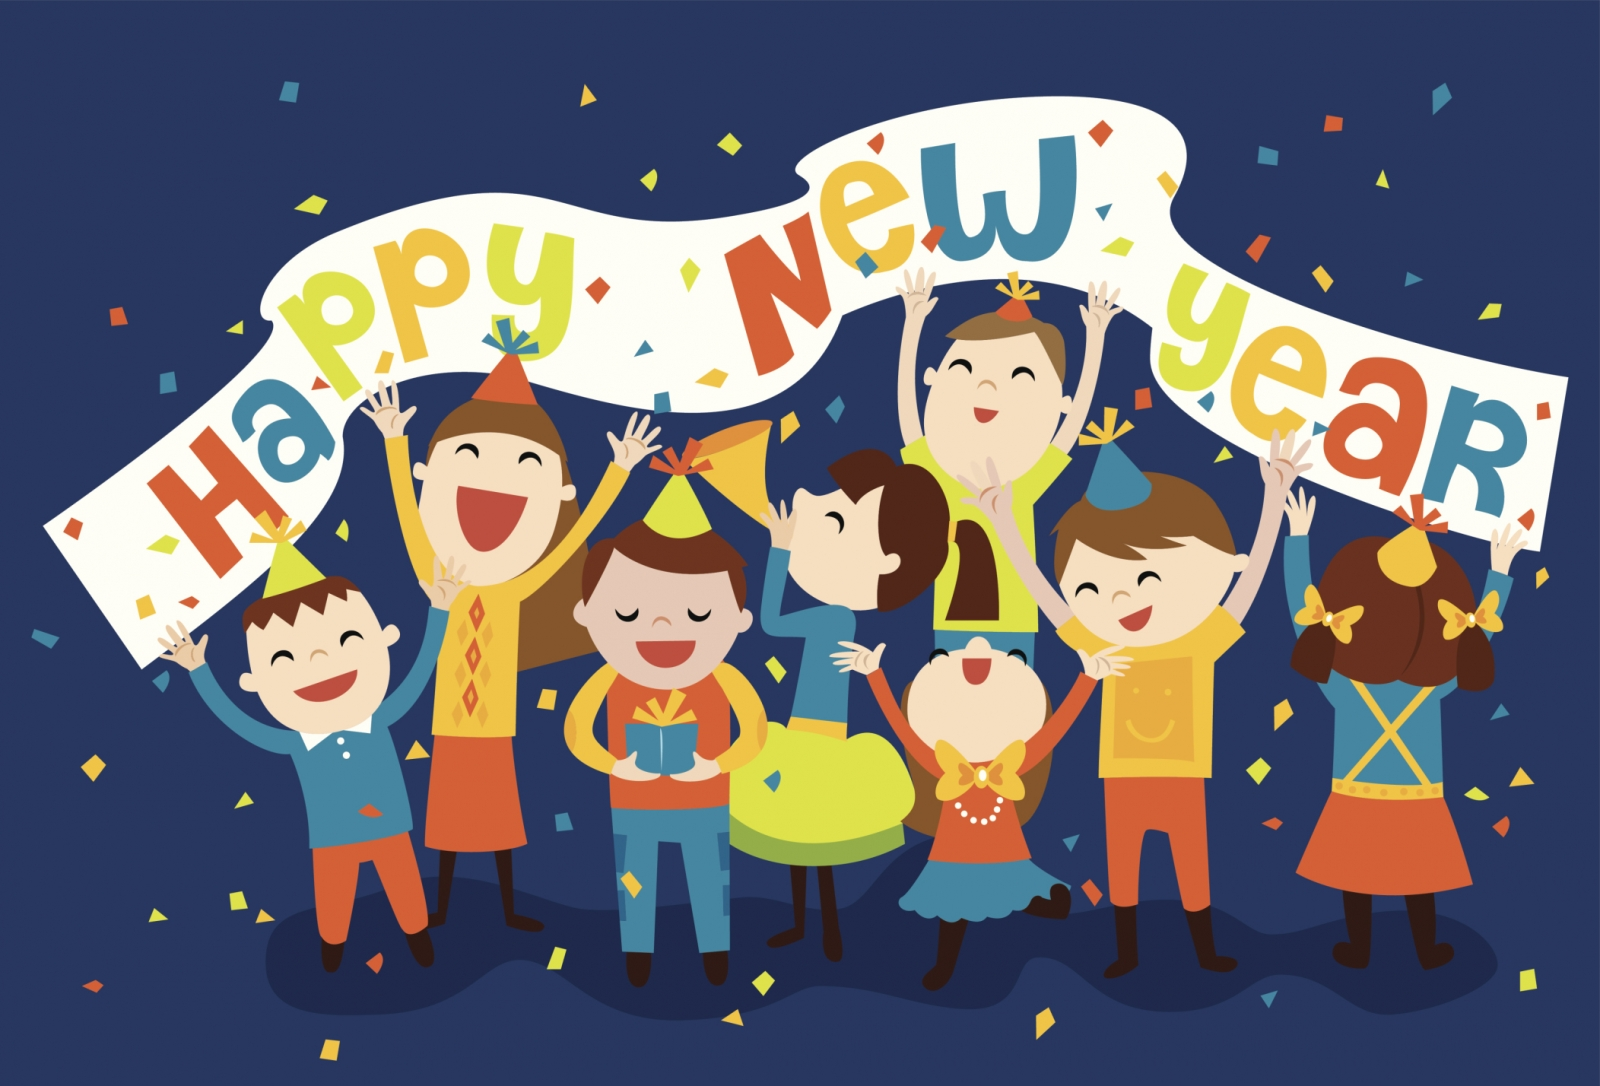 Celebrate clipart new year. Celebration